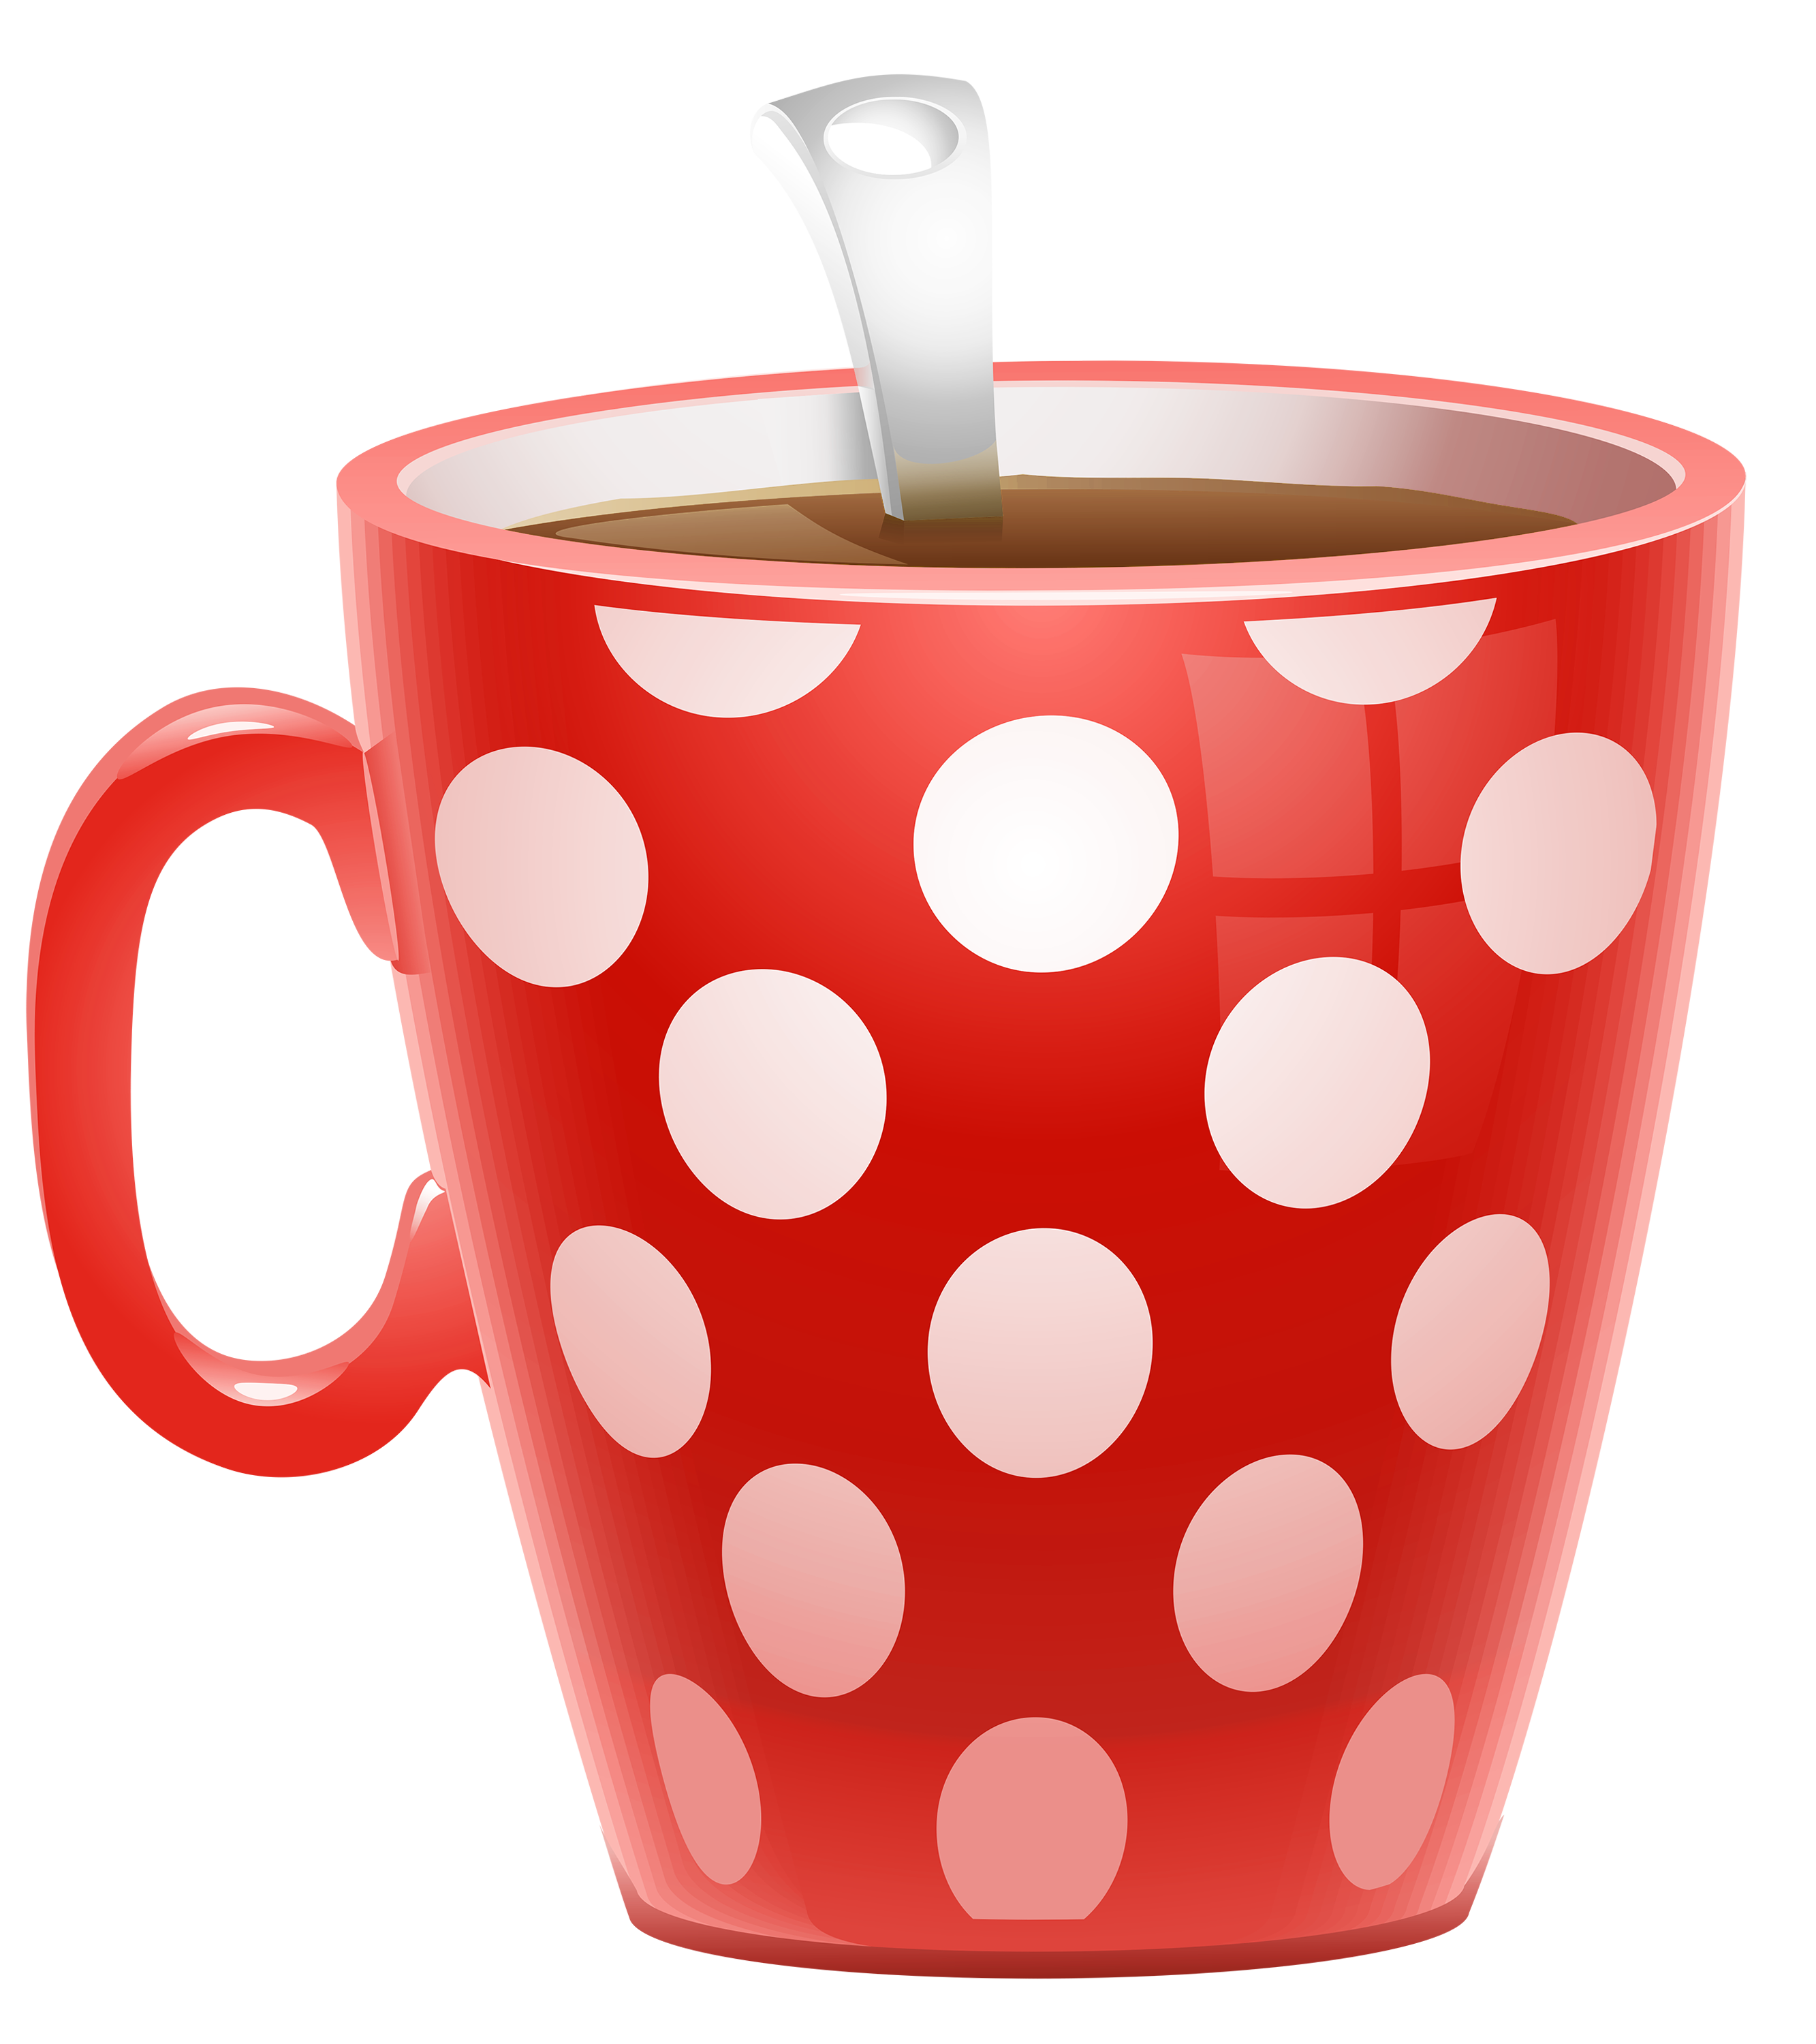 Mugs clipart free clip art coffee. Cup mug png images